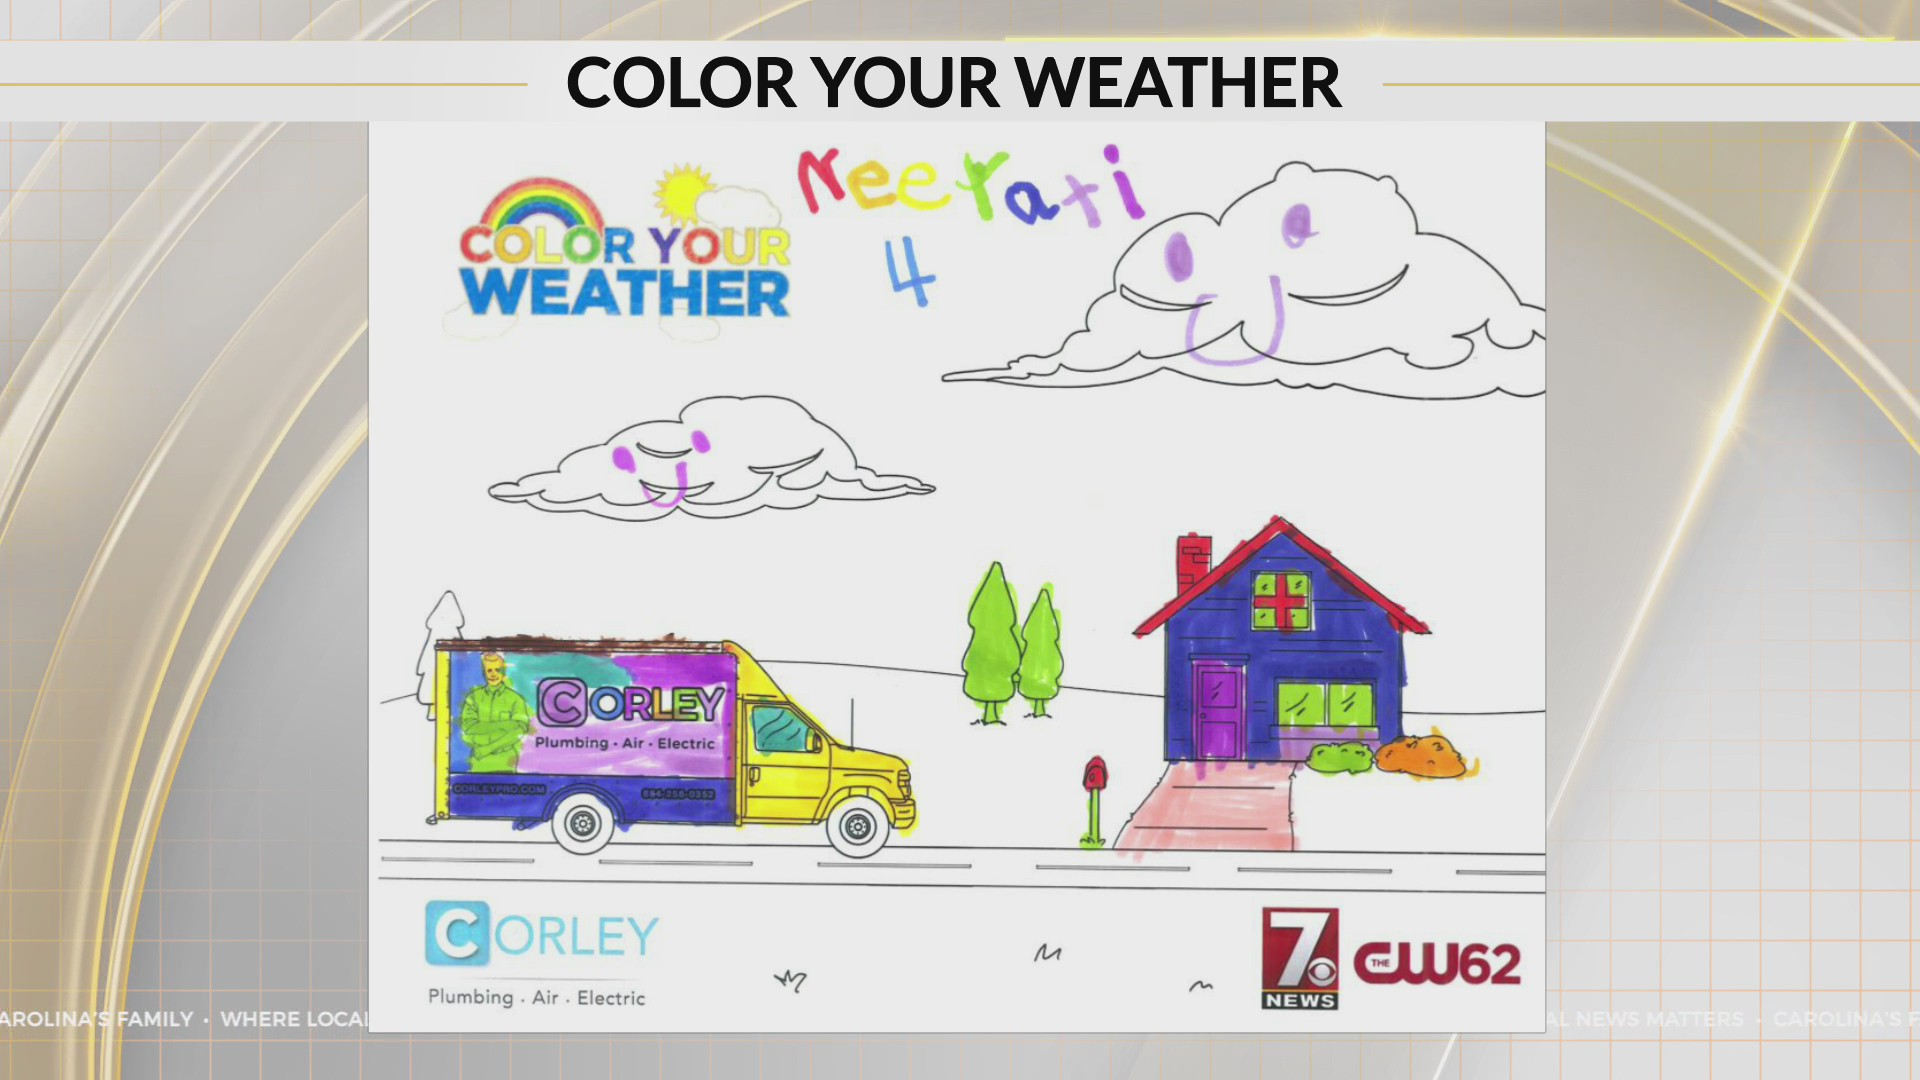 Color Your Weather Neerati